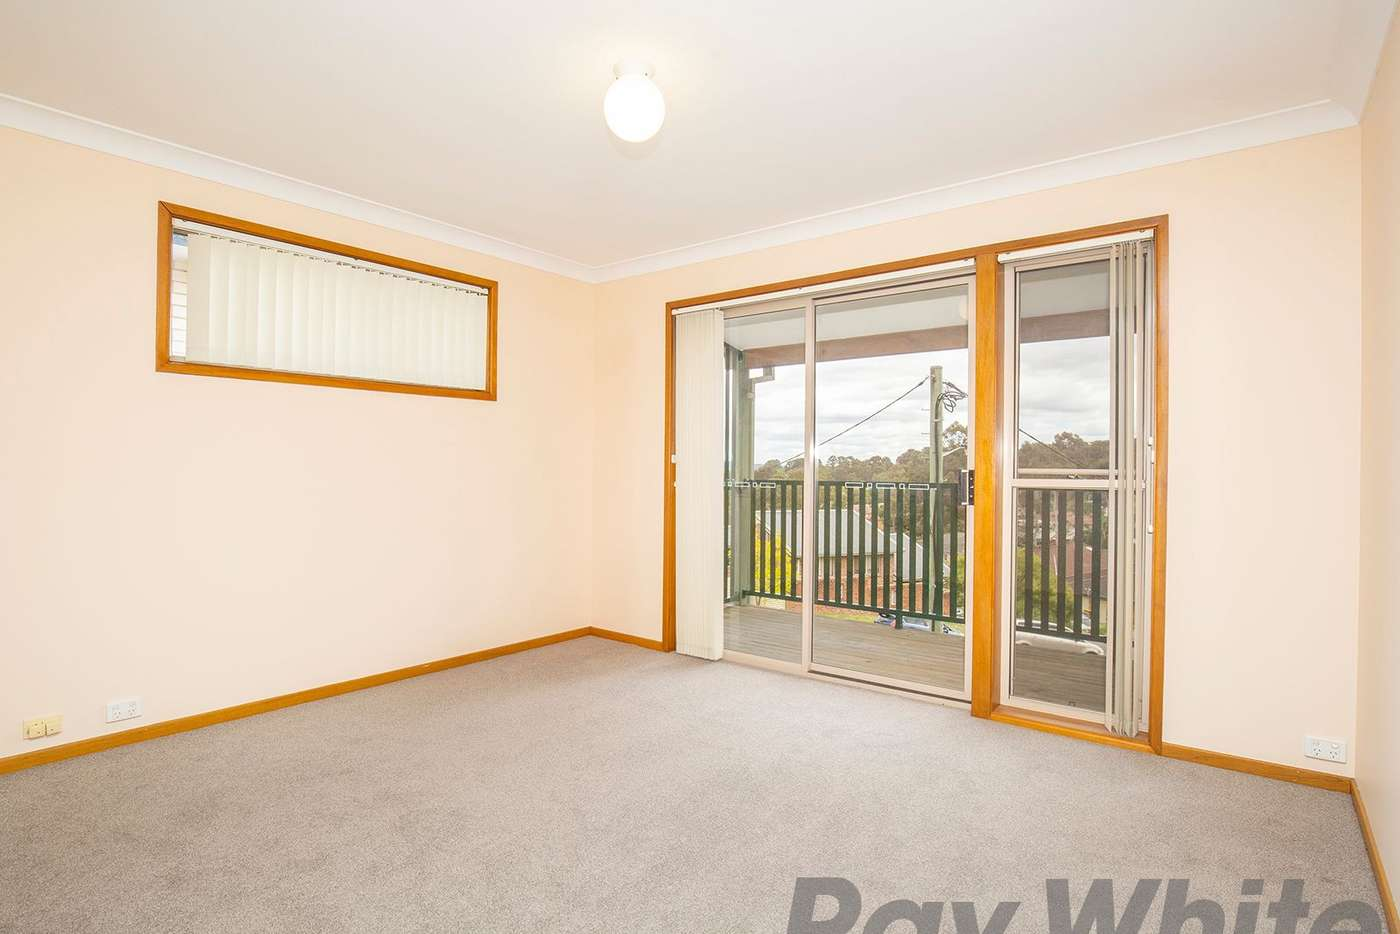 Sixth view of Homely house listing, 19 Andrew Close, North Lambton NSW 2299